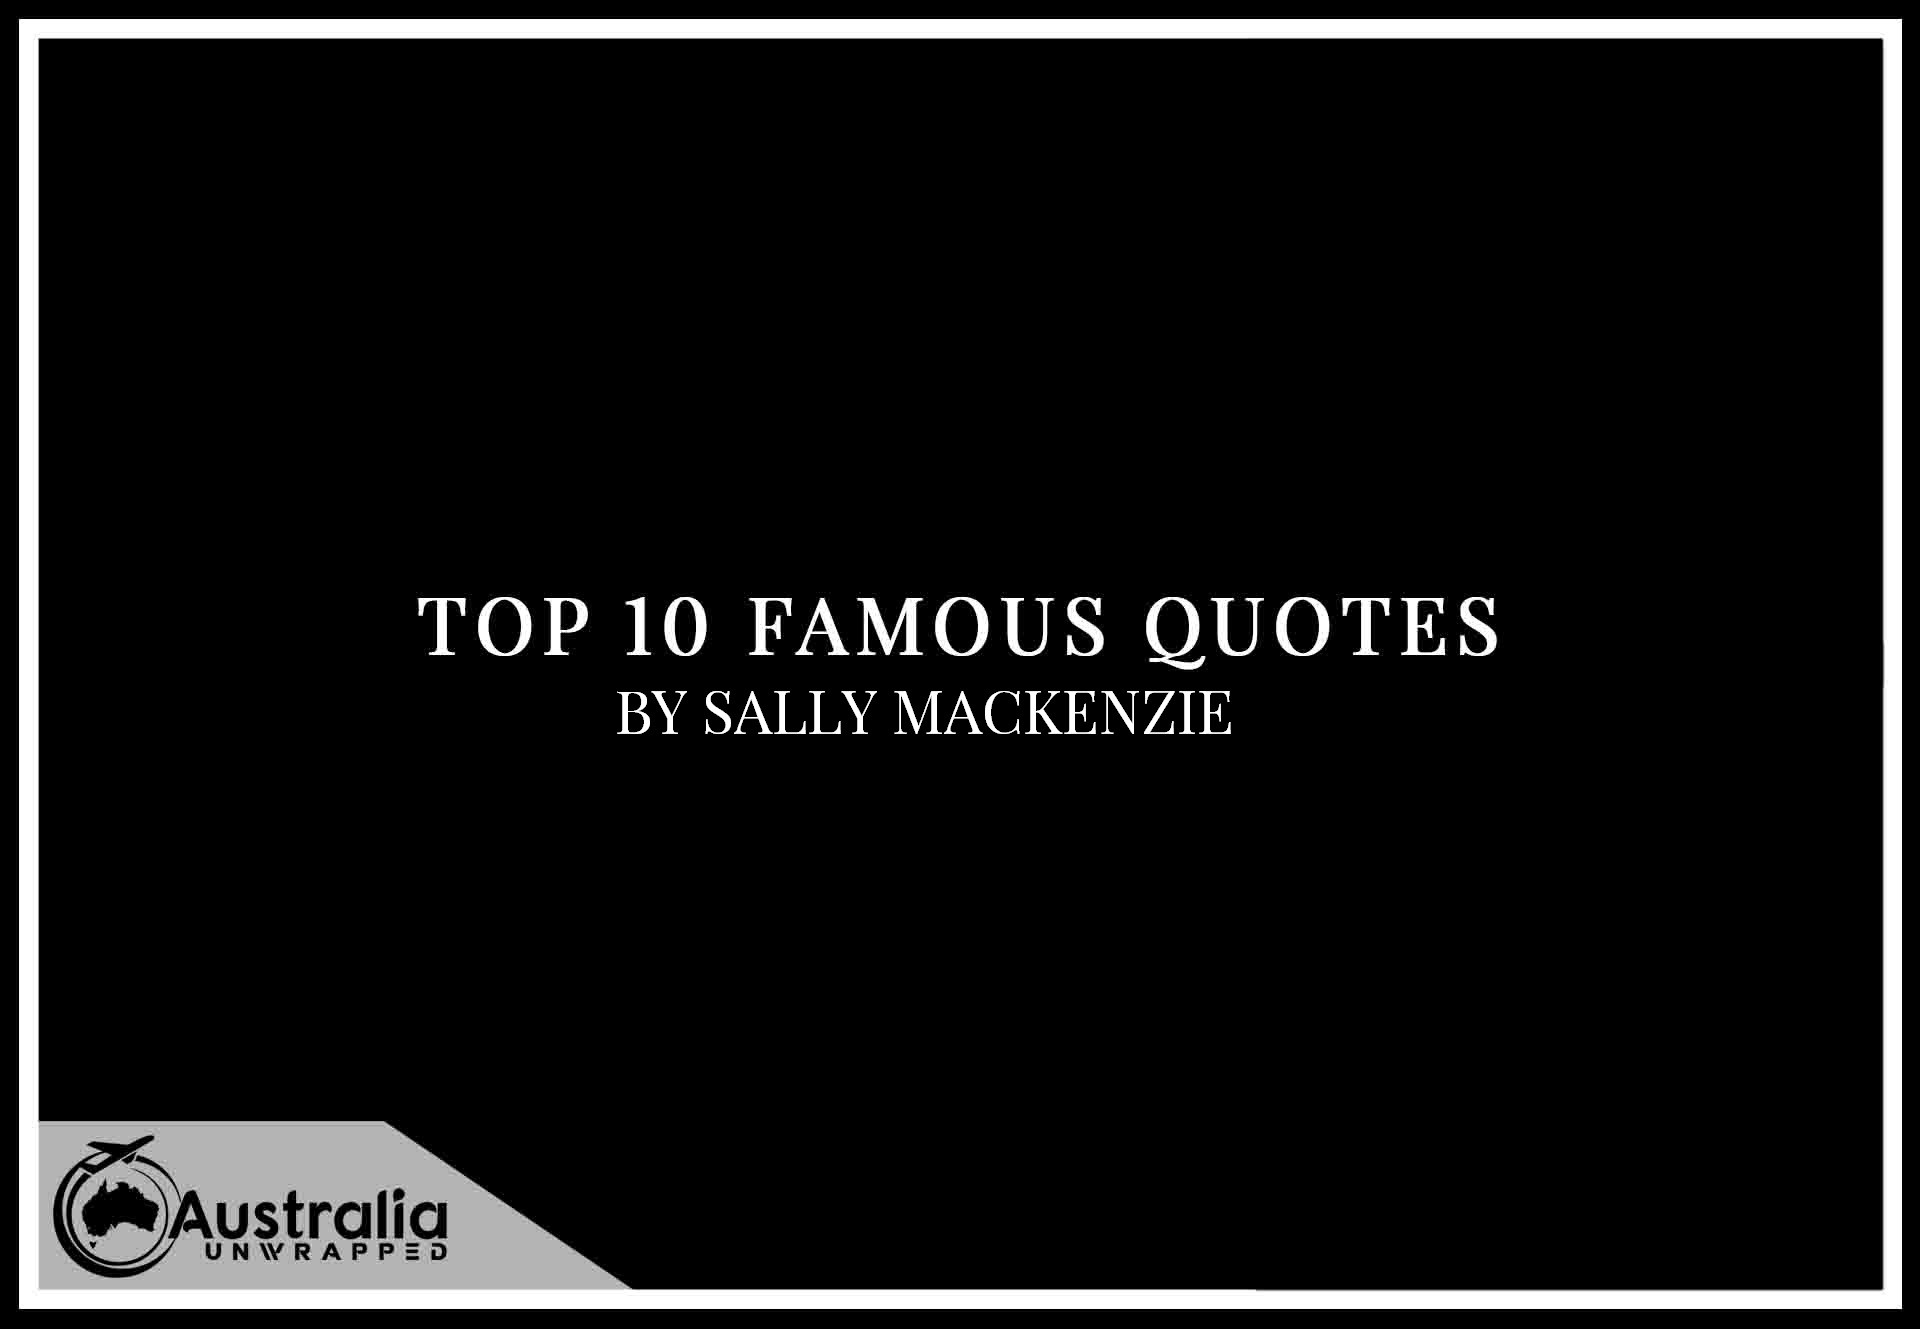 Top 10 Famous Quotes by Author Sally MacKenzie